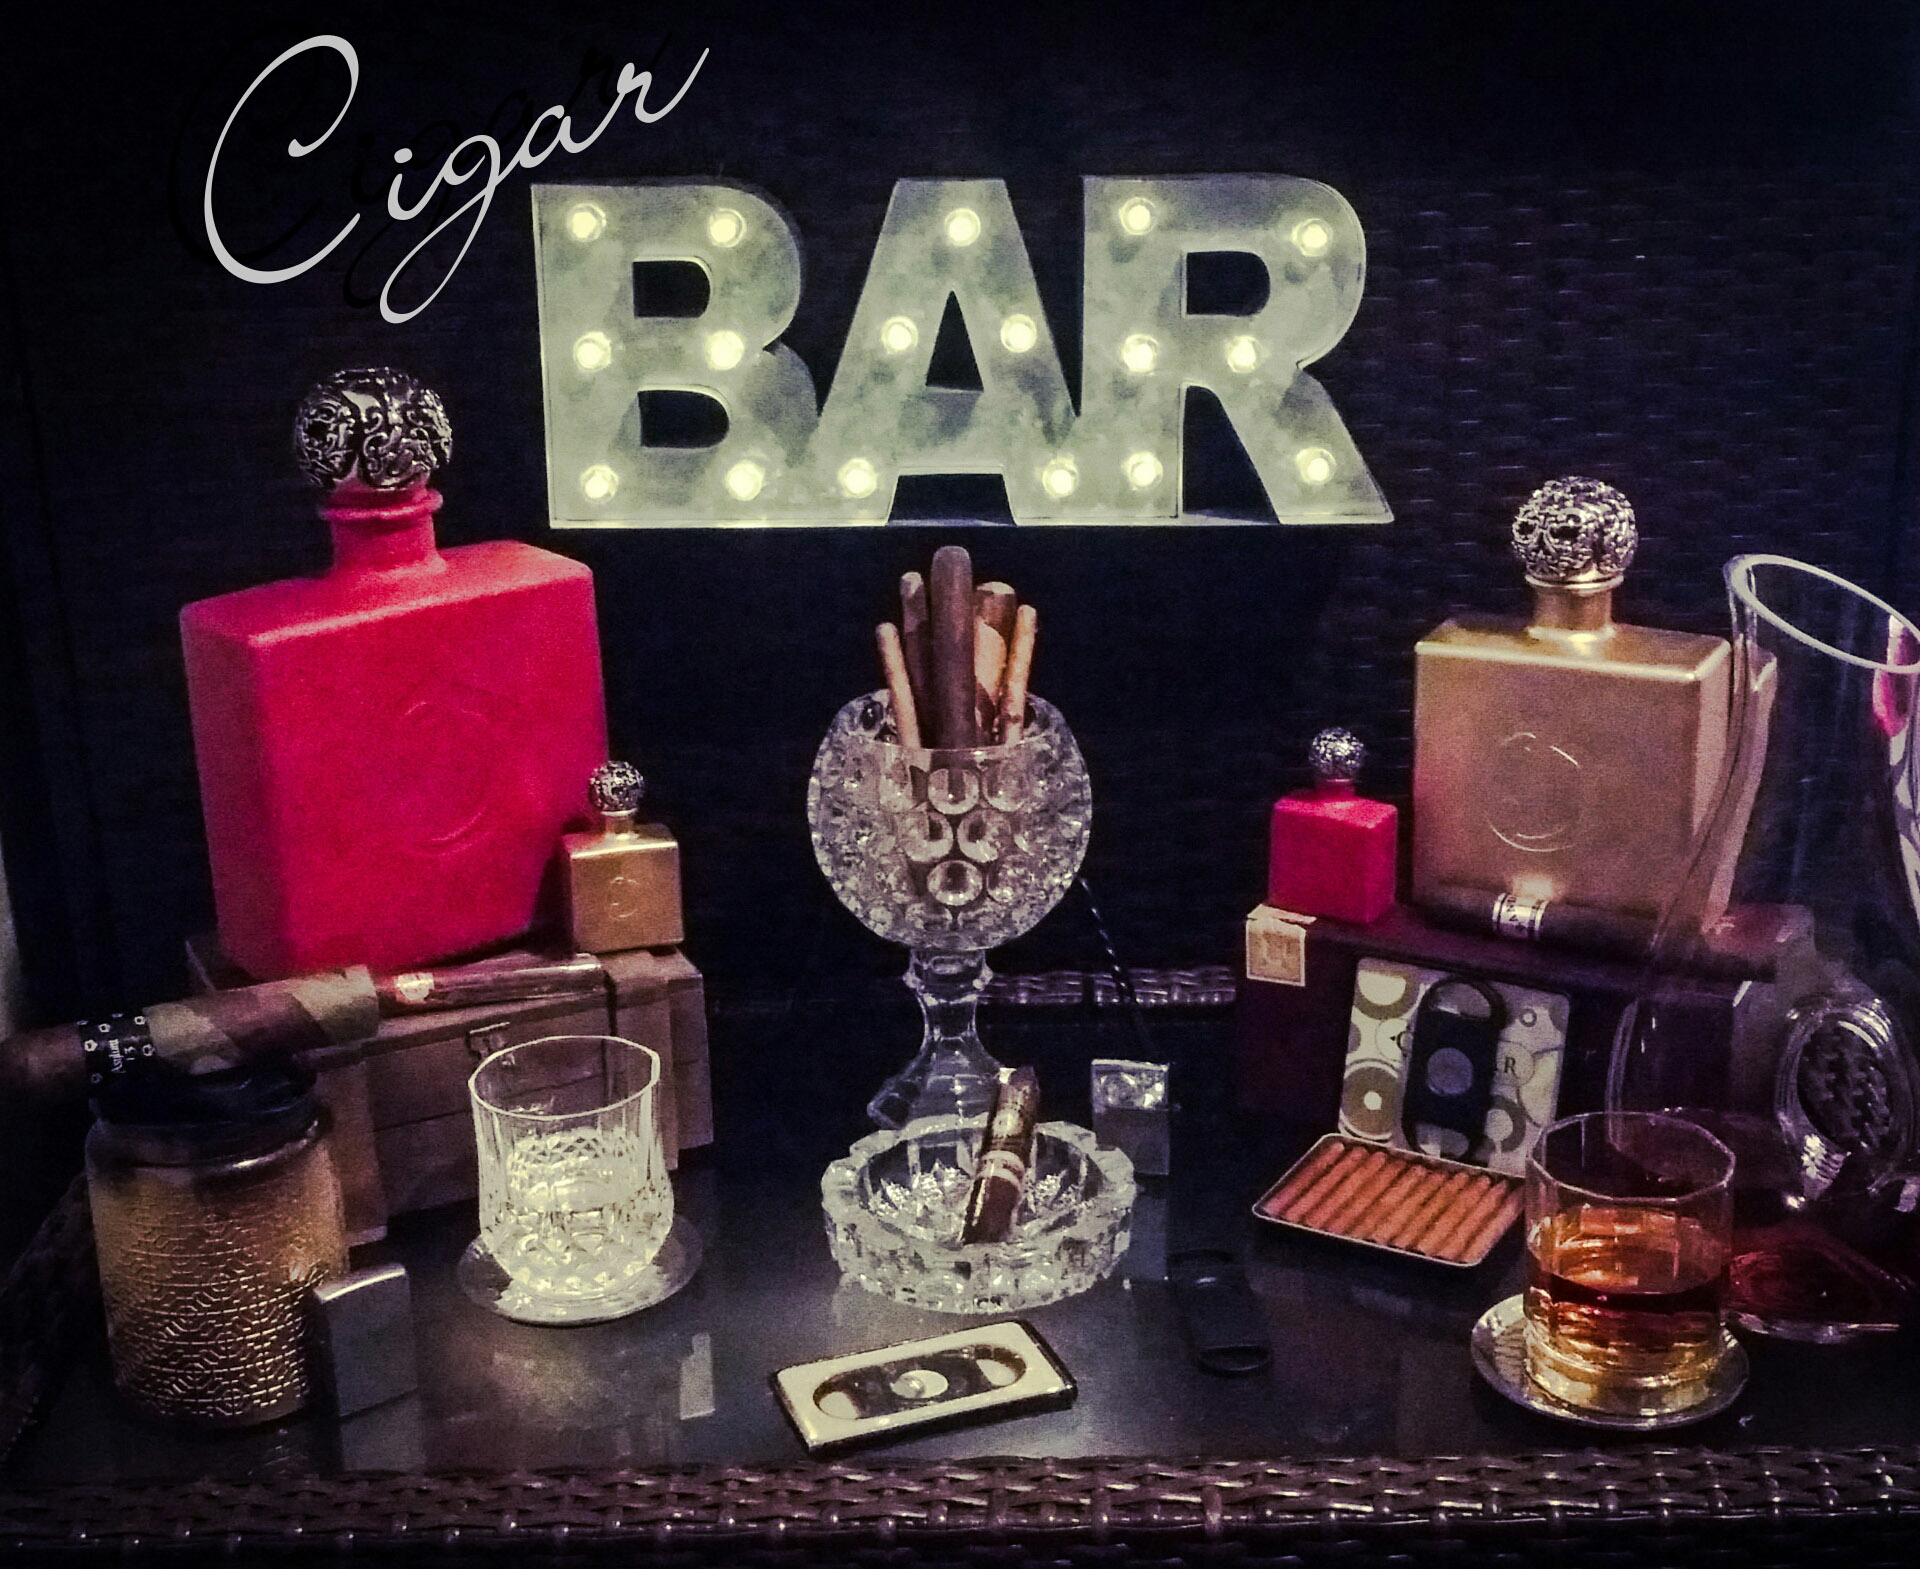 2018 Just For Him Cigar Bar Front of Comp Card.jpg